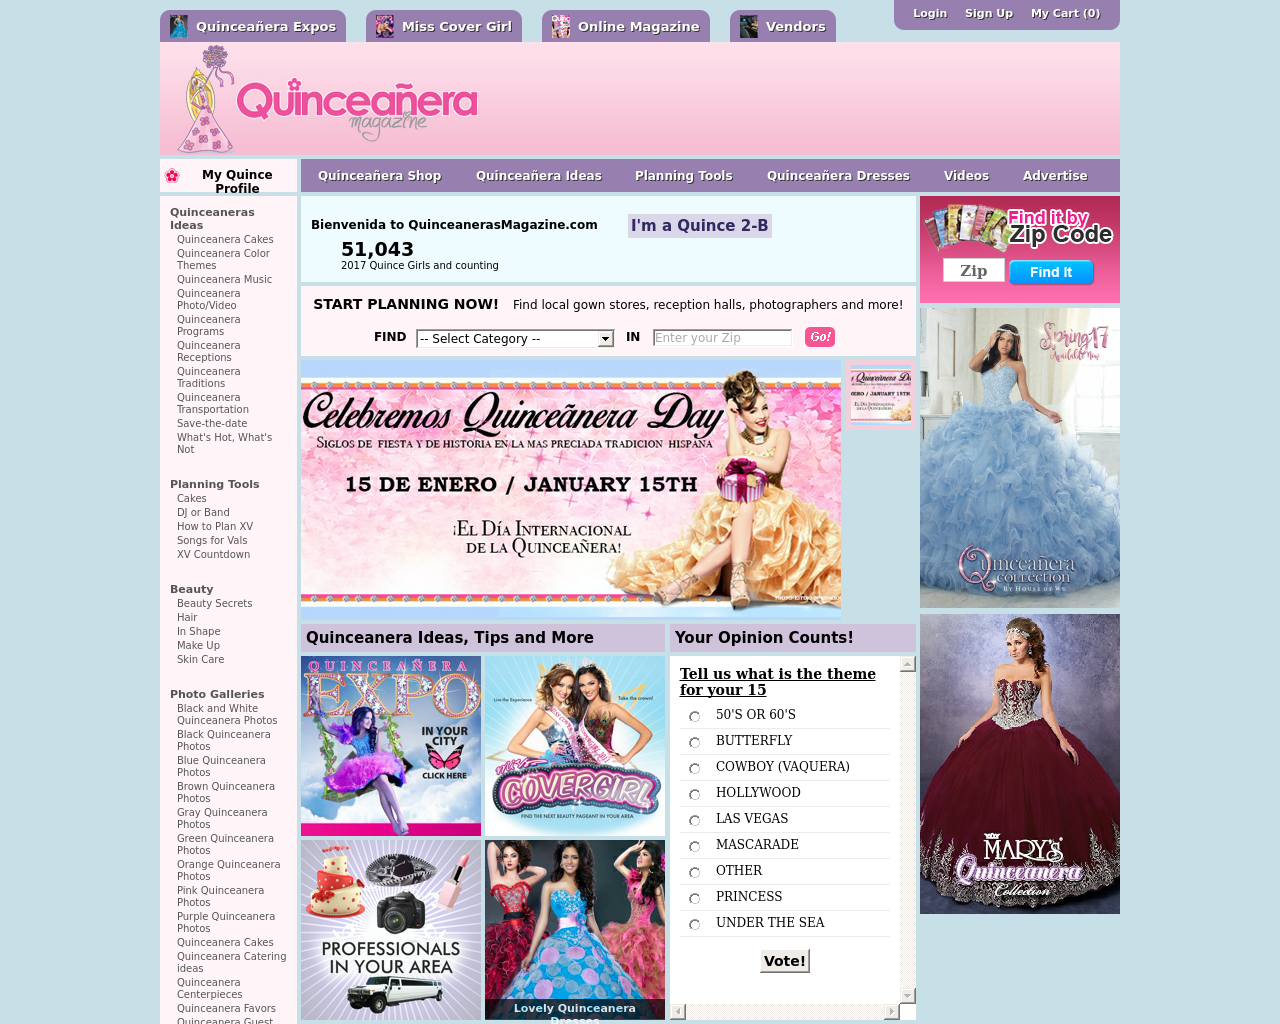 Quinceaneras-Magazine-Advertising-Reviews-Pricing